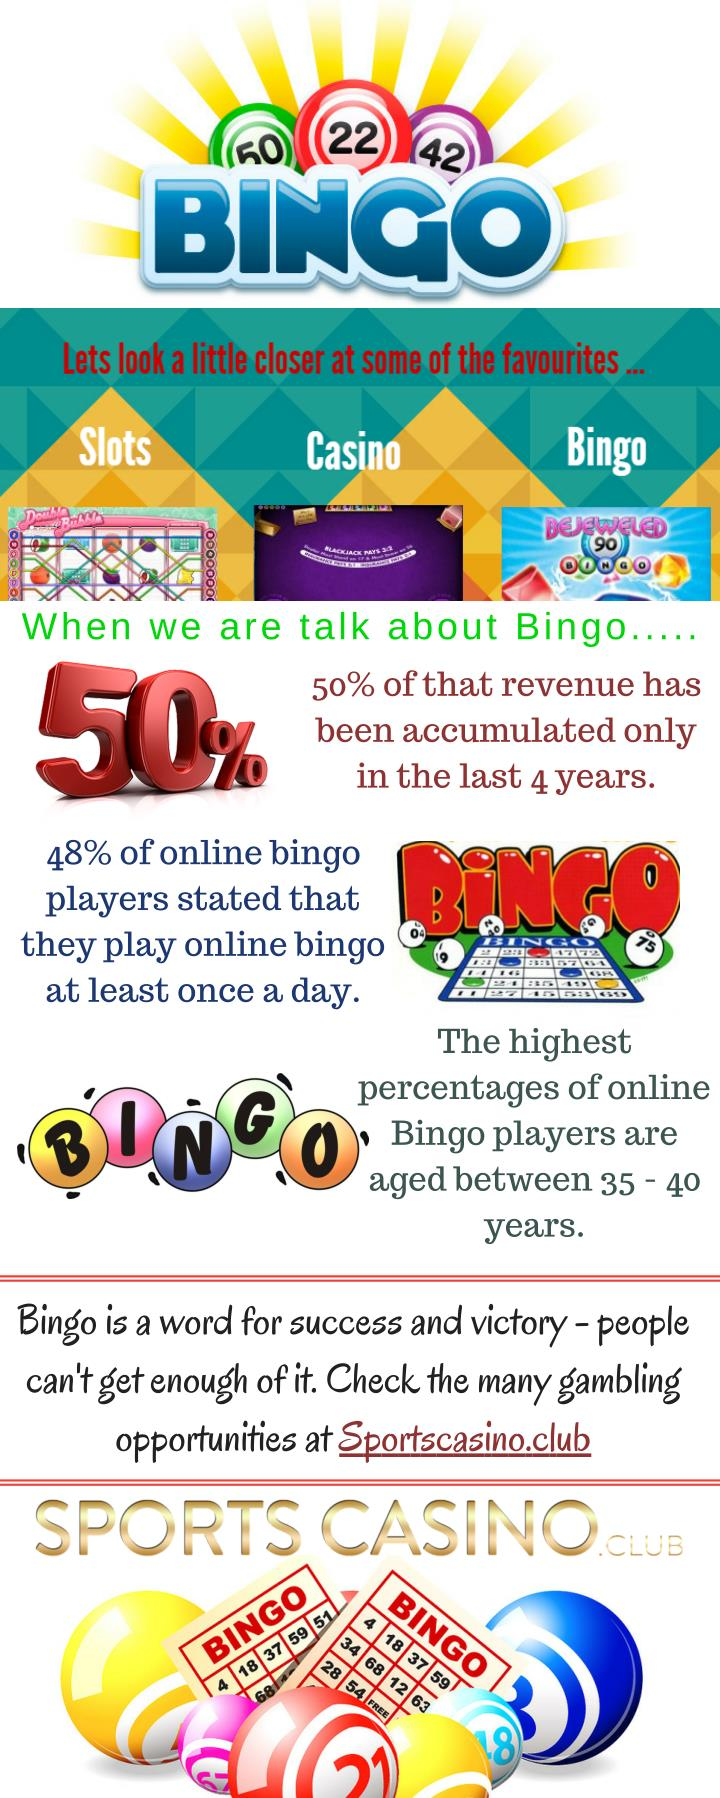 When we are talk about Bingo.....